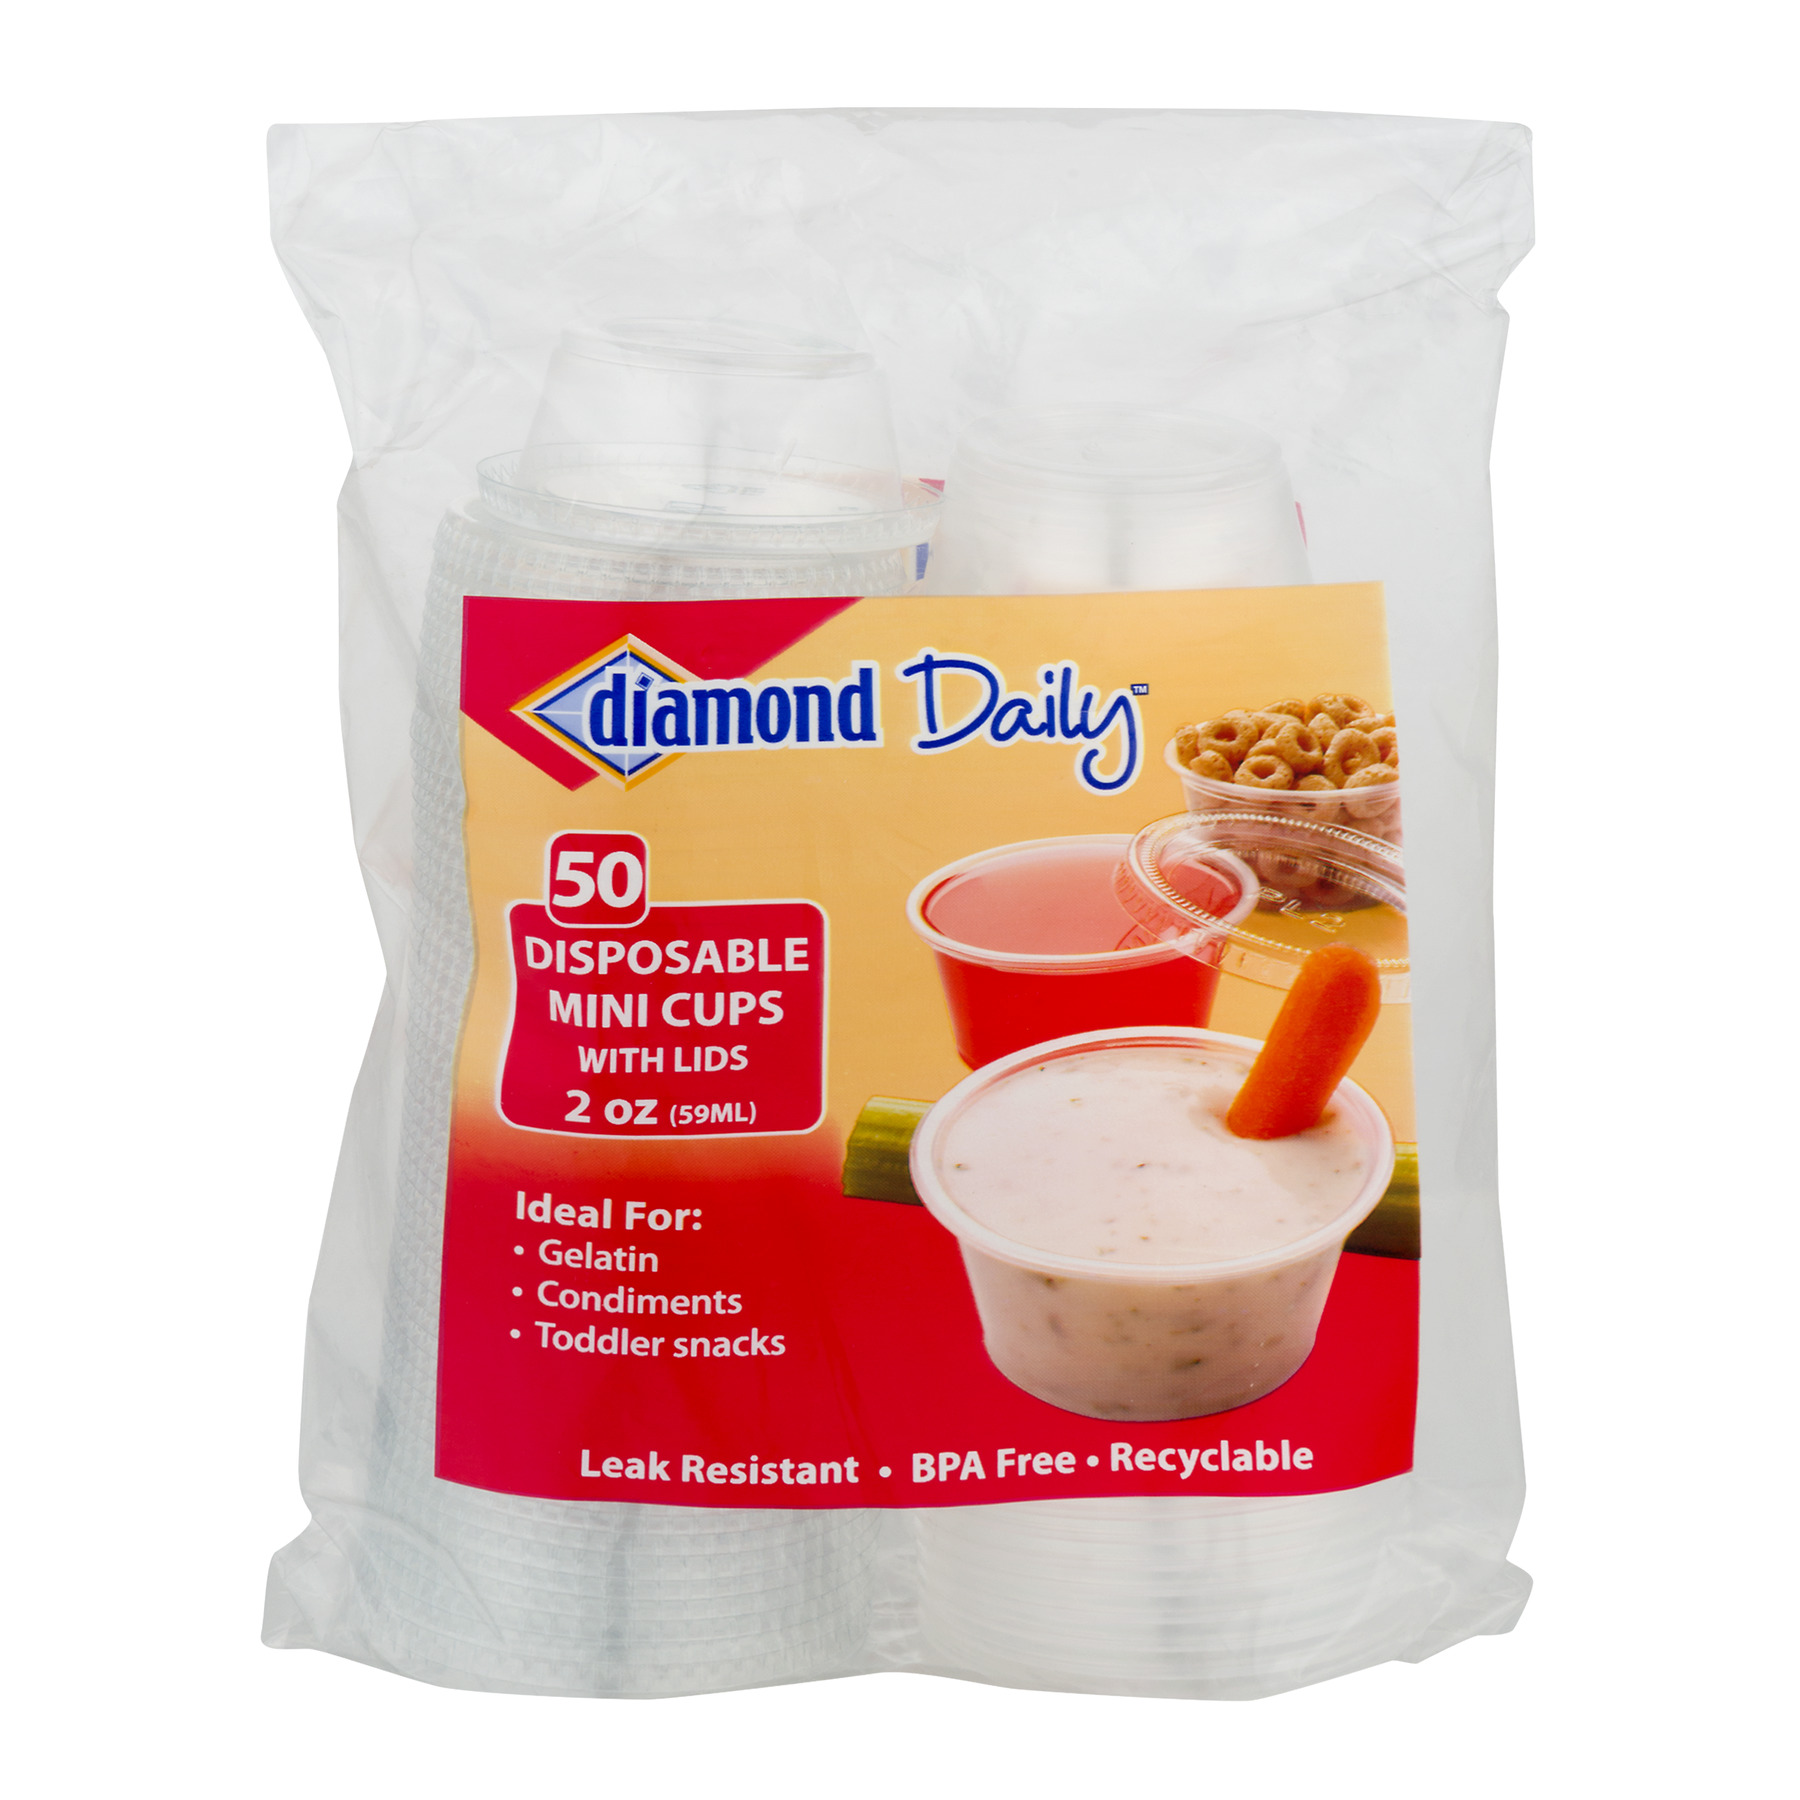 Diamond Multi-Purpose Mini Cups & Lids, 2 Oz, 50 Count